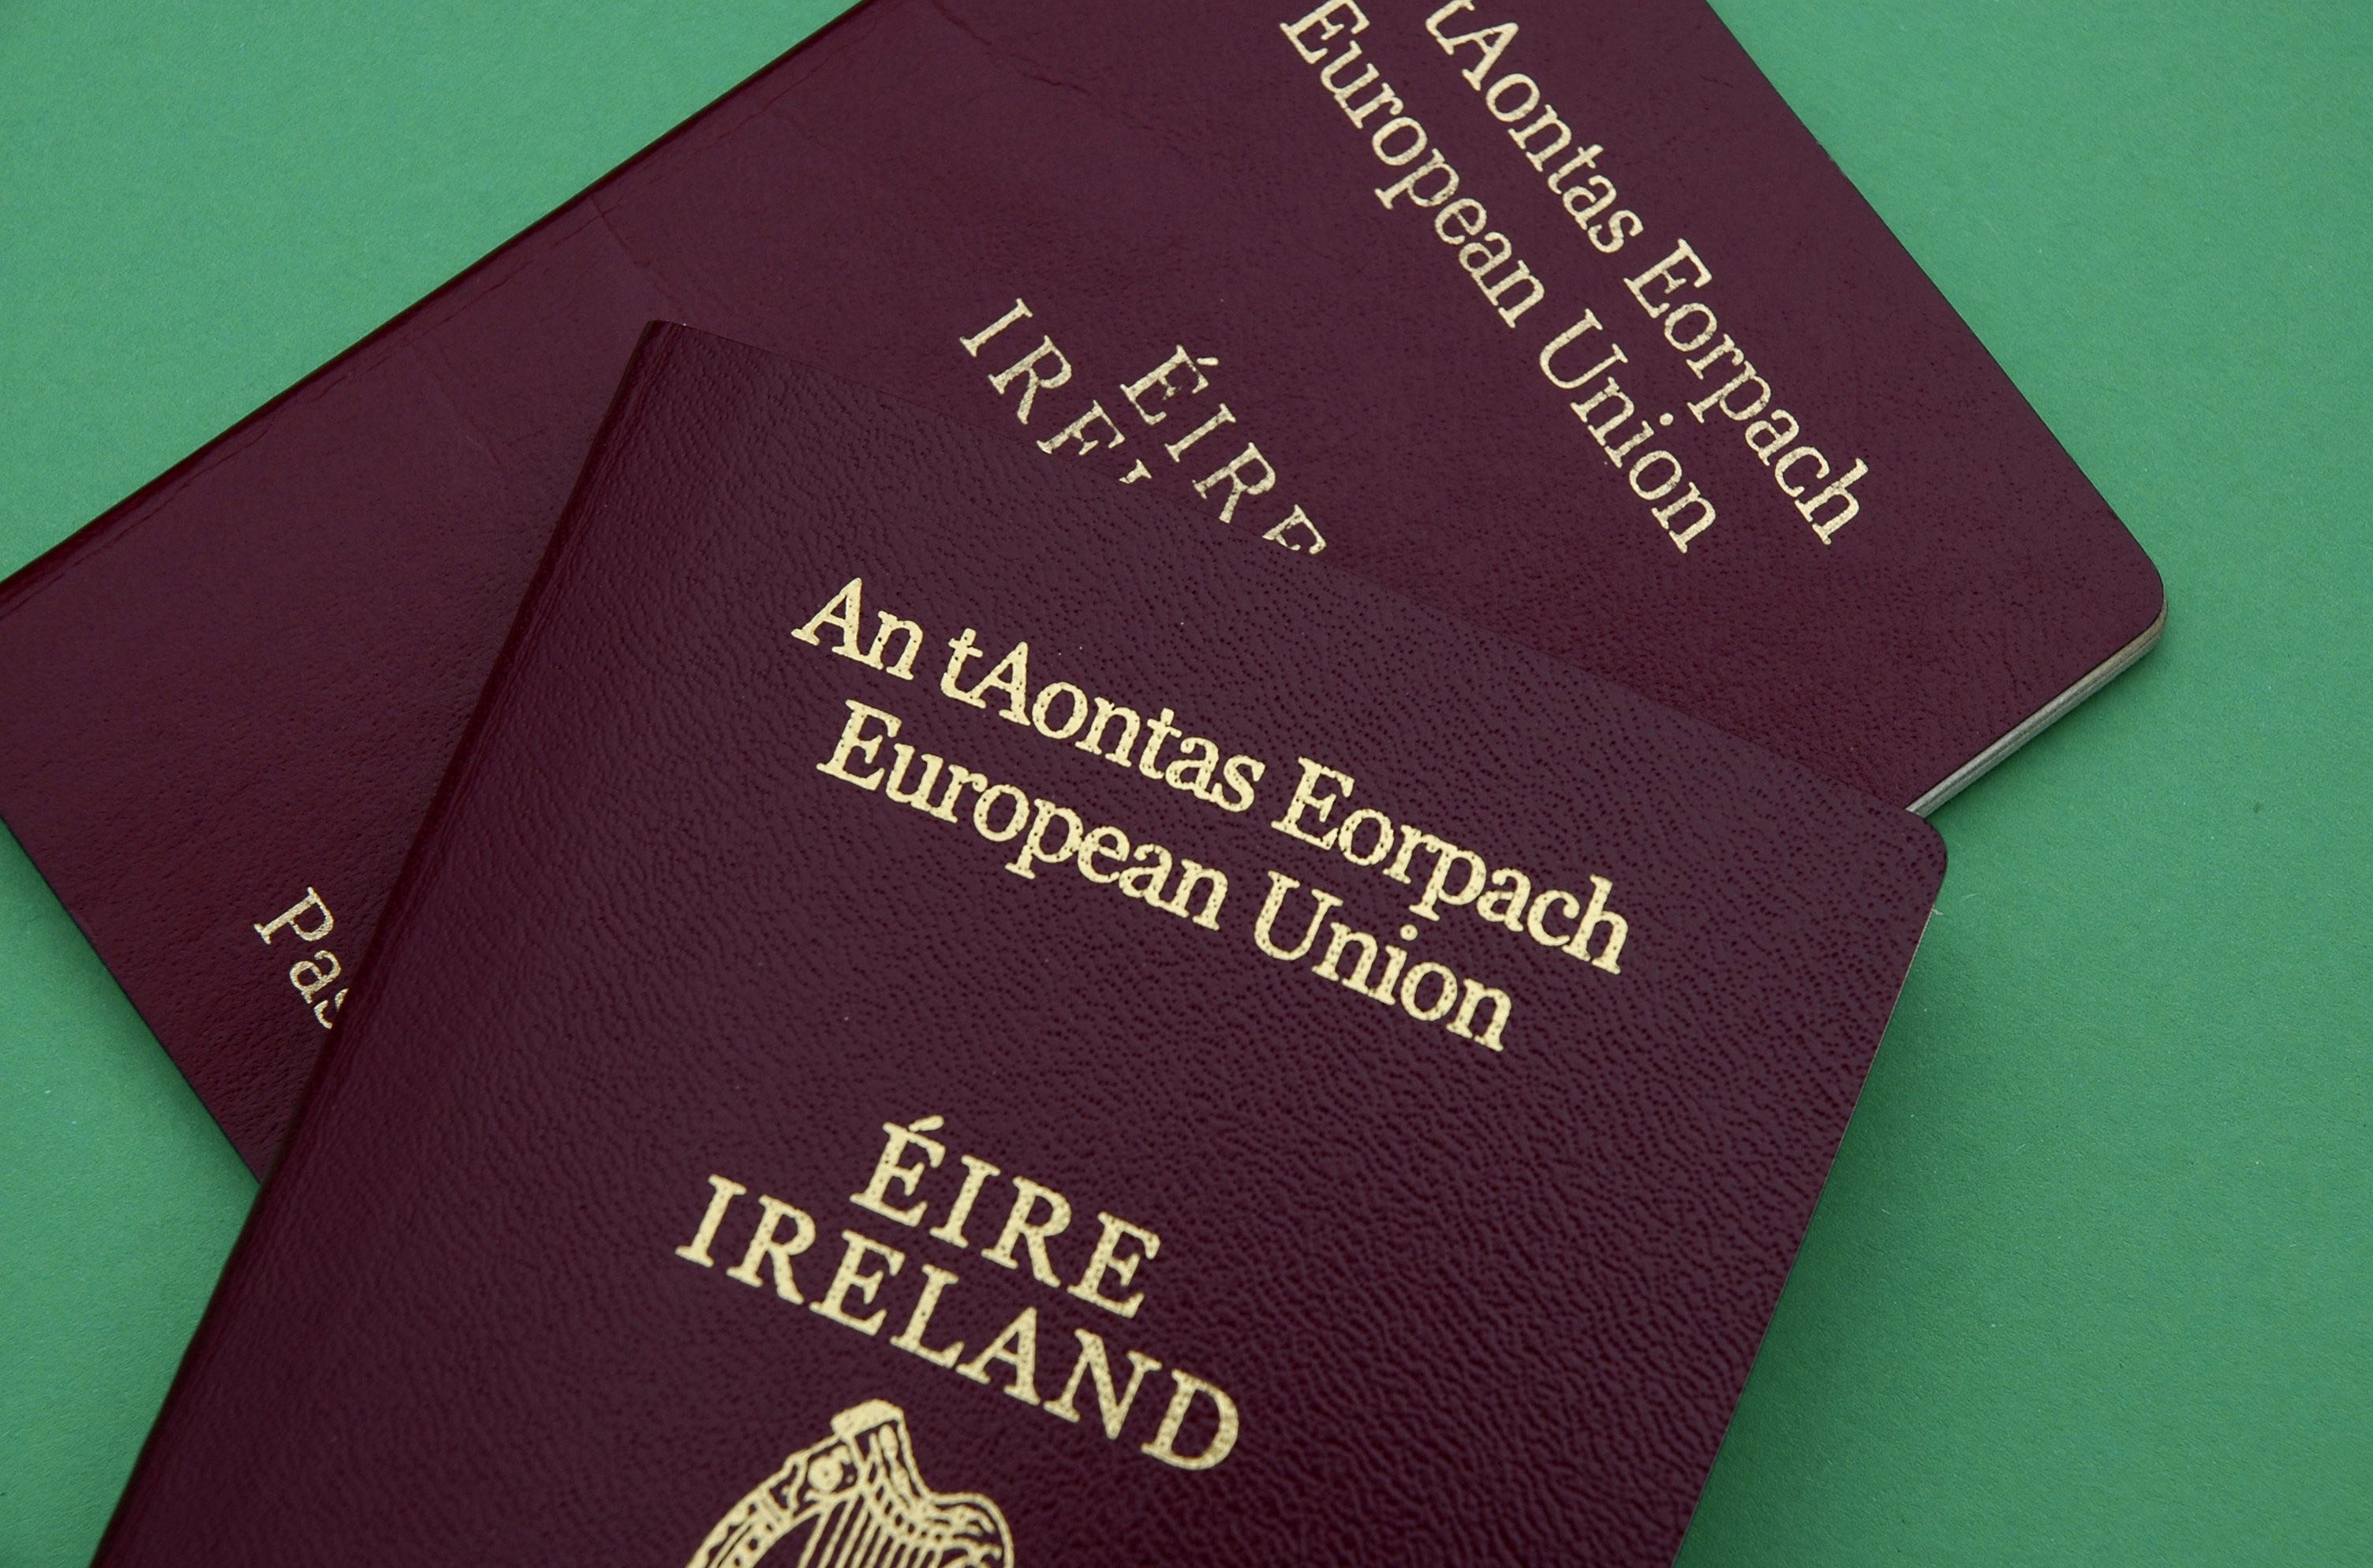 Post Office runs out of form for Irish passport applications after Brexit